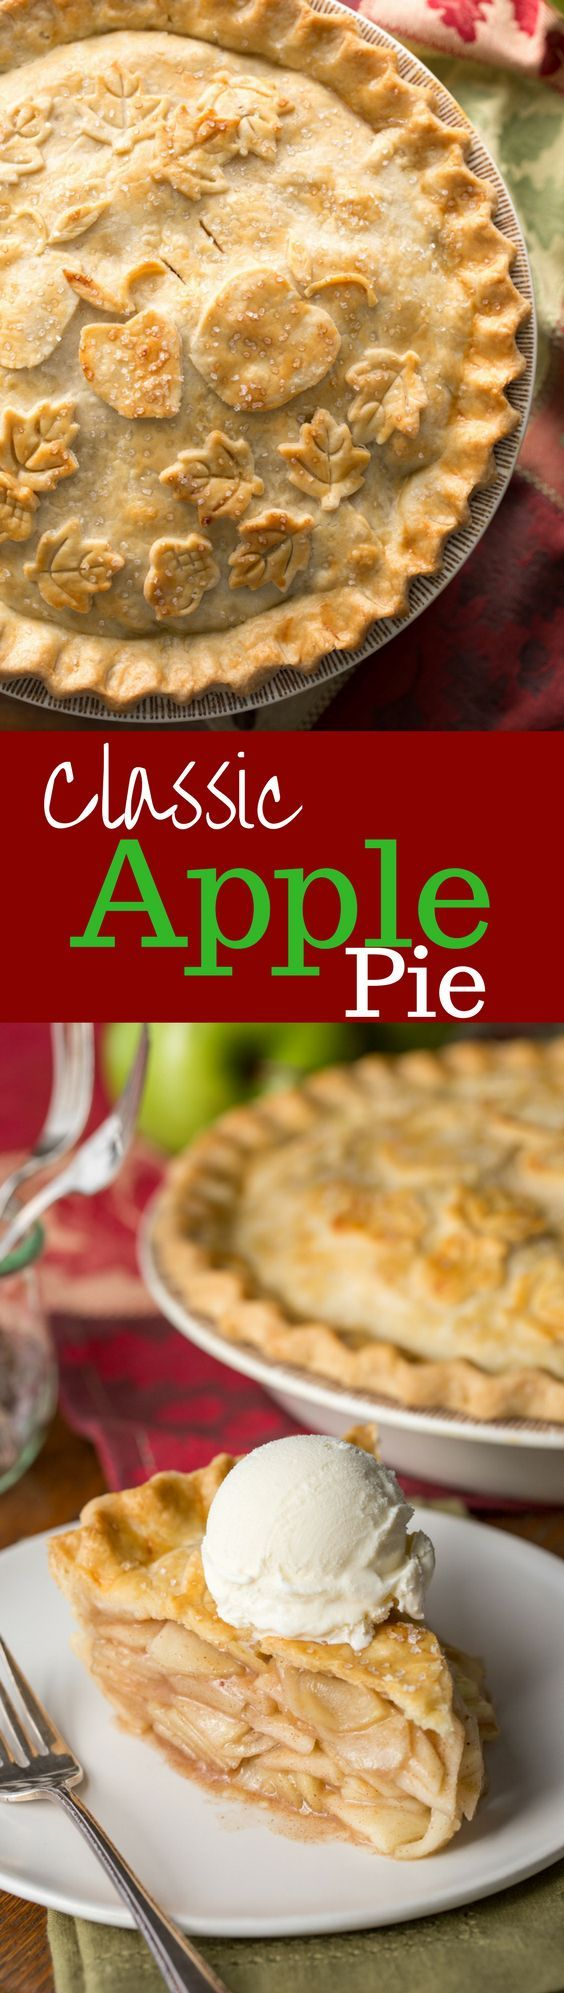 548 best images about favorite apple dessert recipes on pinterest apple cinnamon fall for Better homes and gardens pie crust